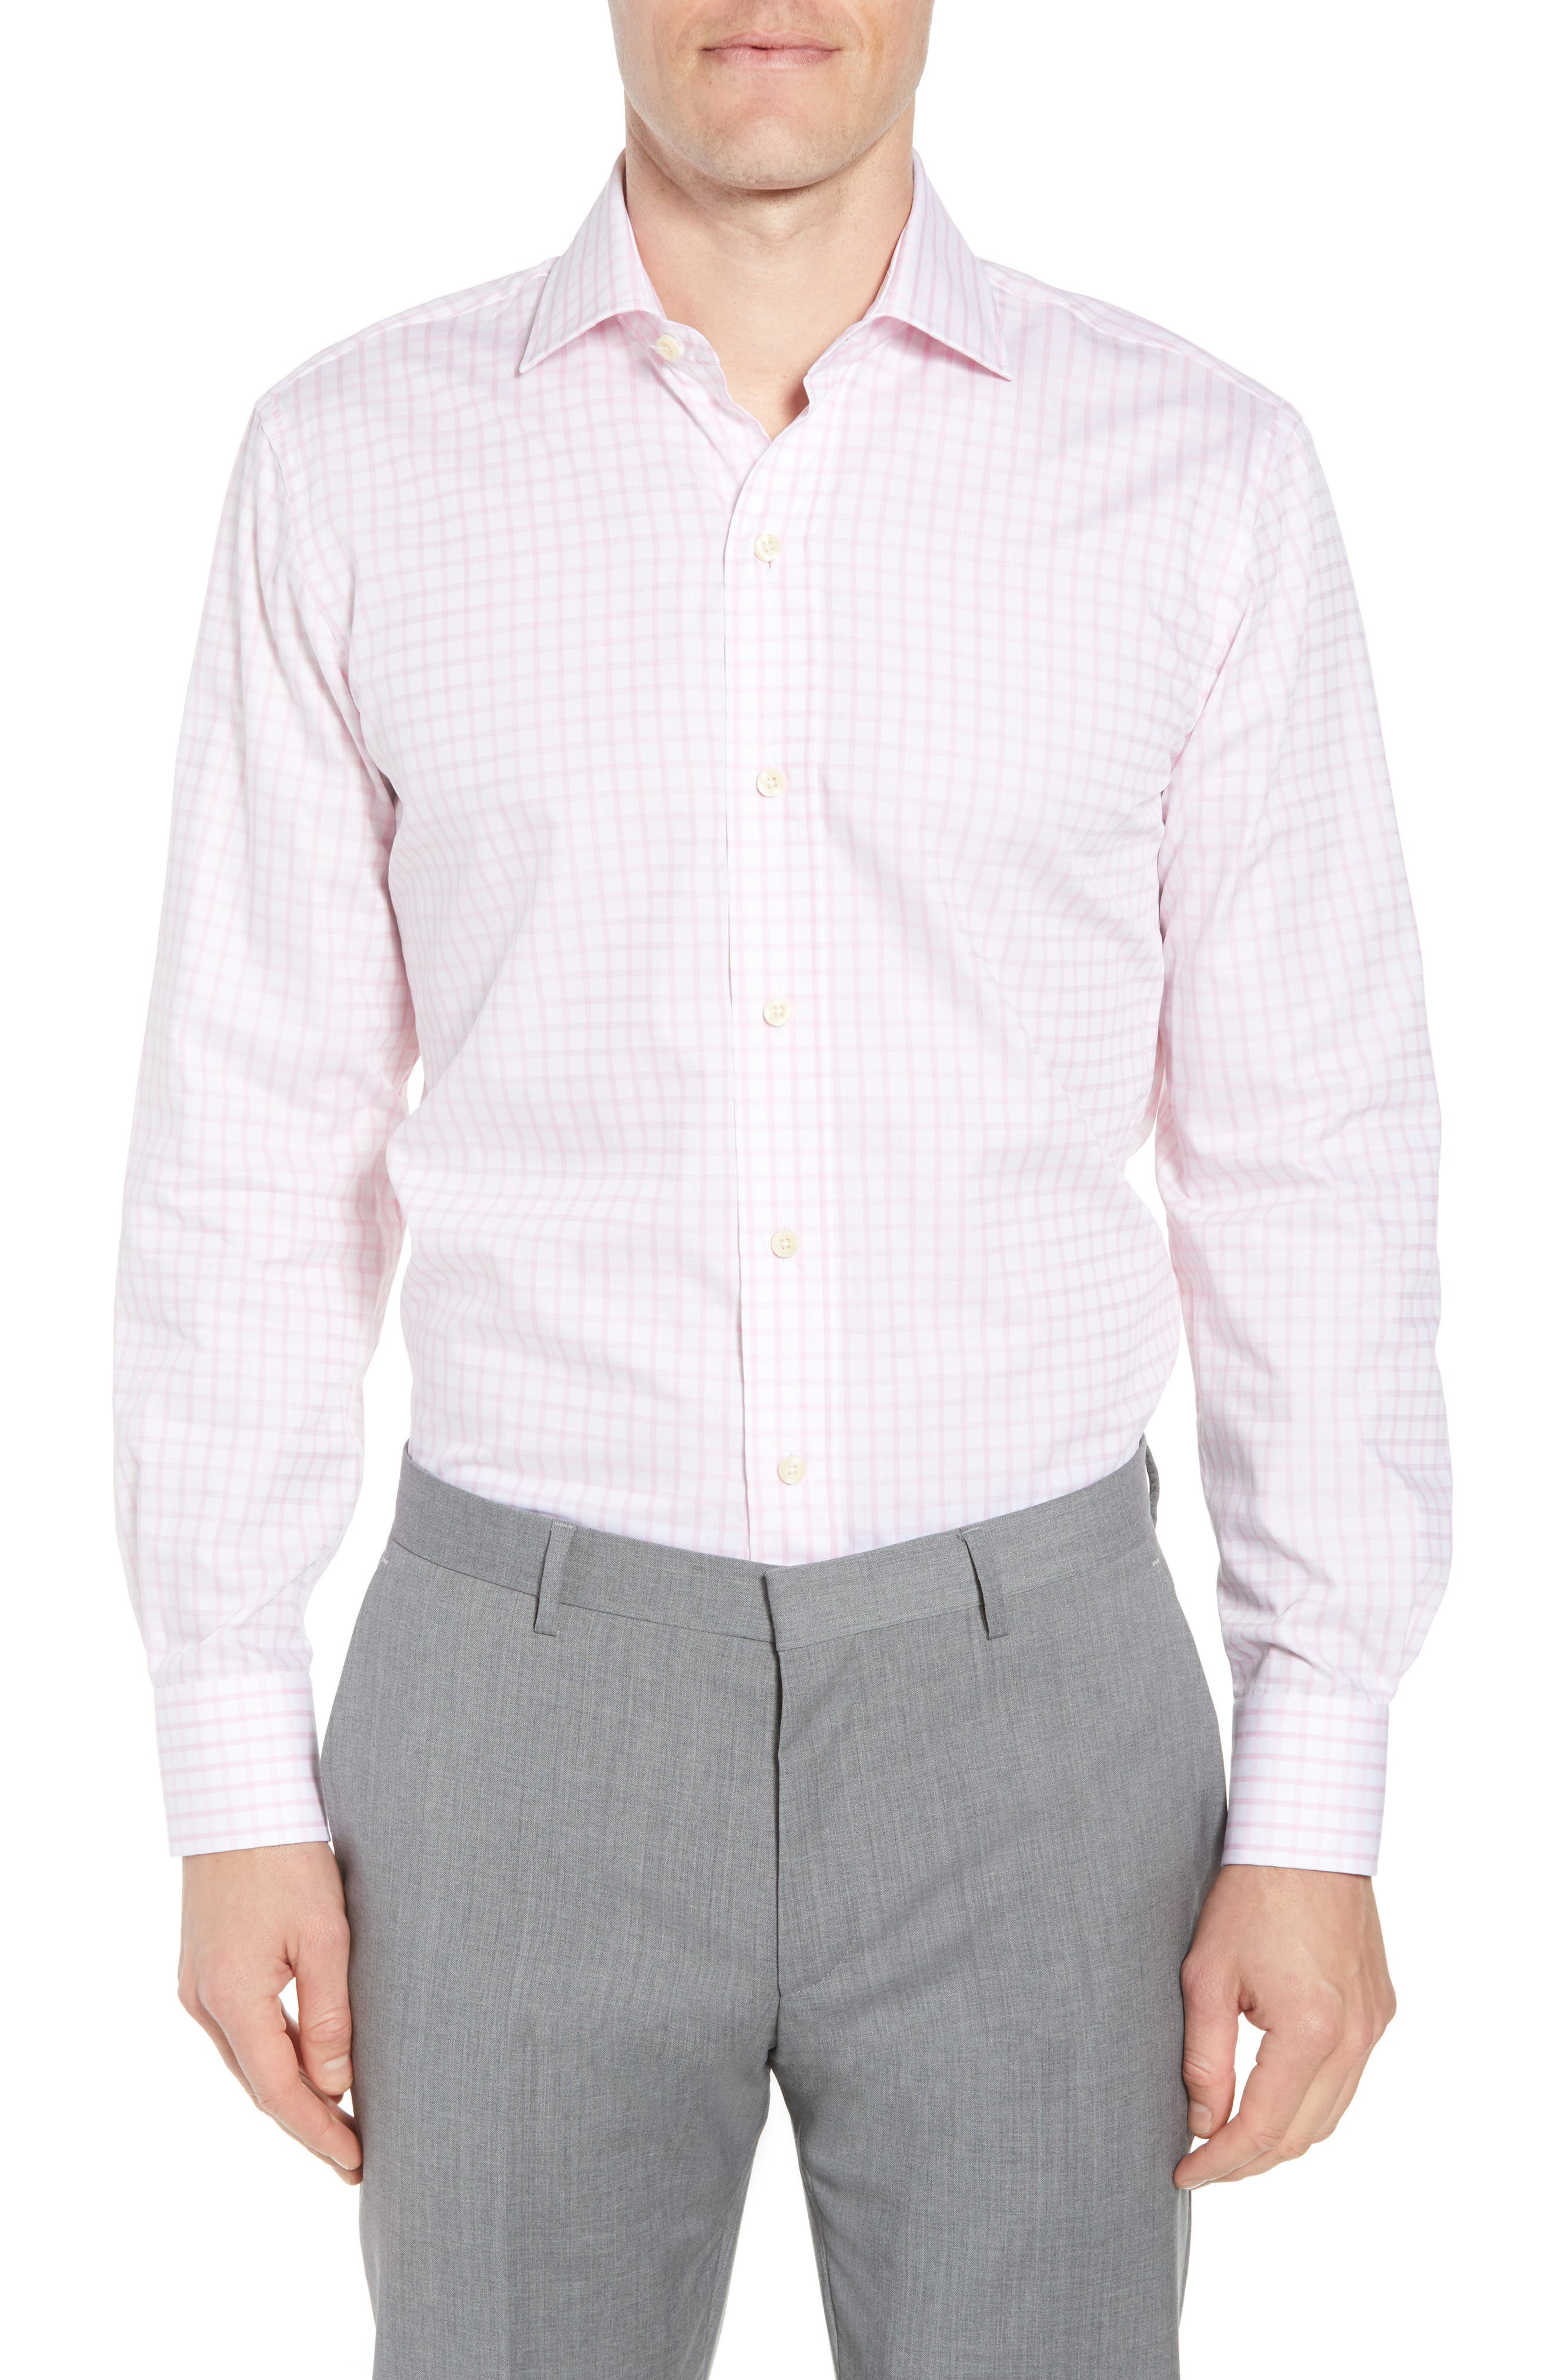 Ledbury Armett Trim Fit Windowpane Dress Shirt